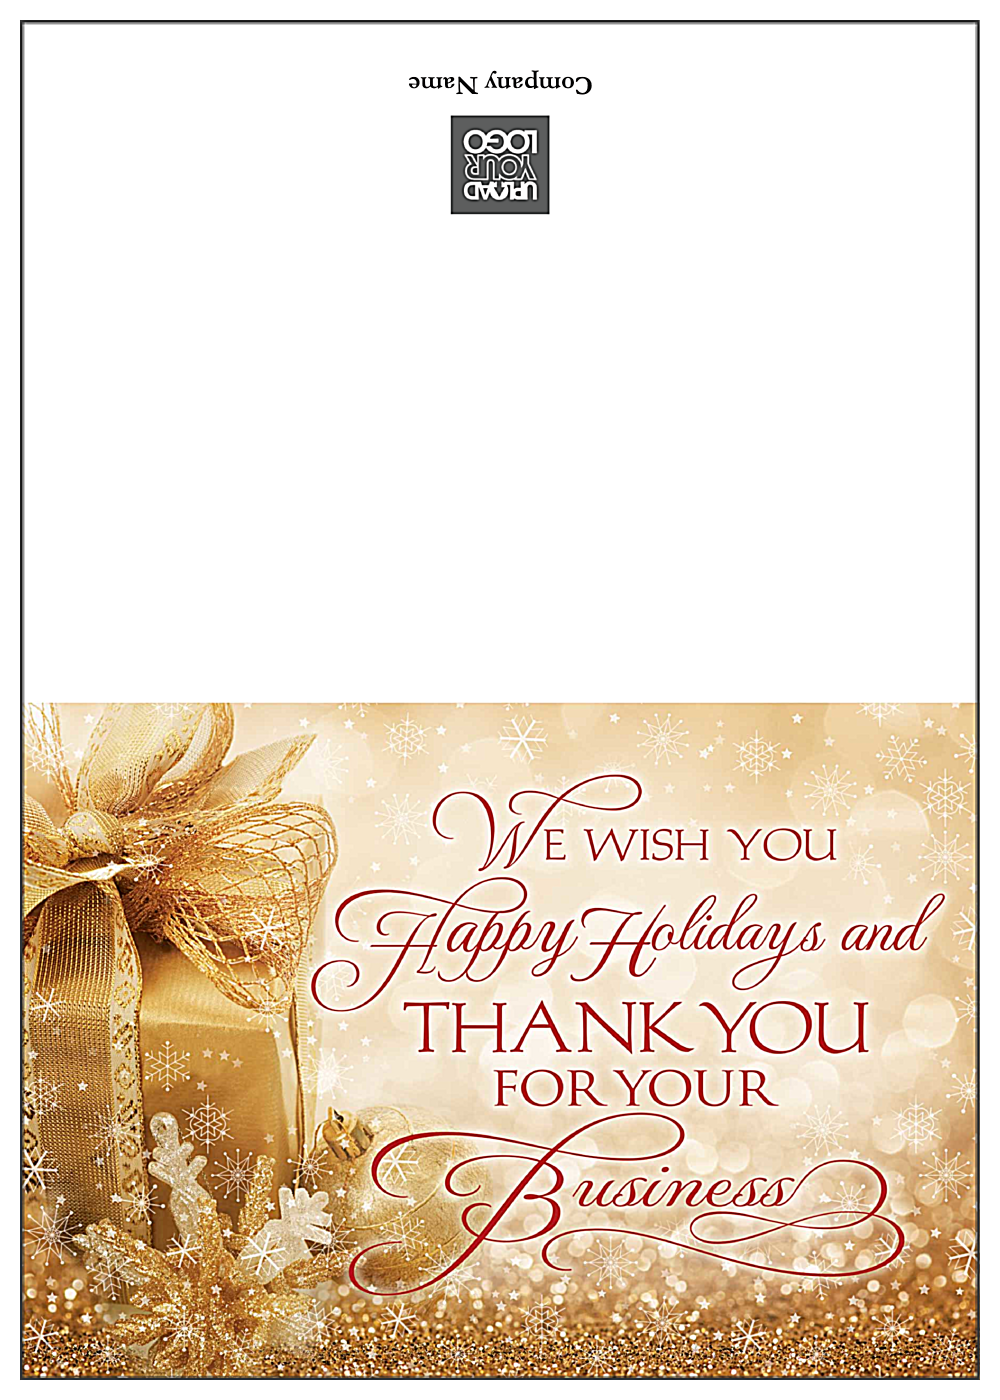 Golden Happy Holidays front - Greeting Cards Maker